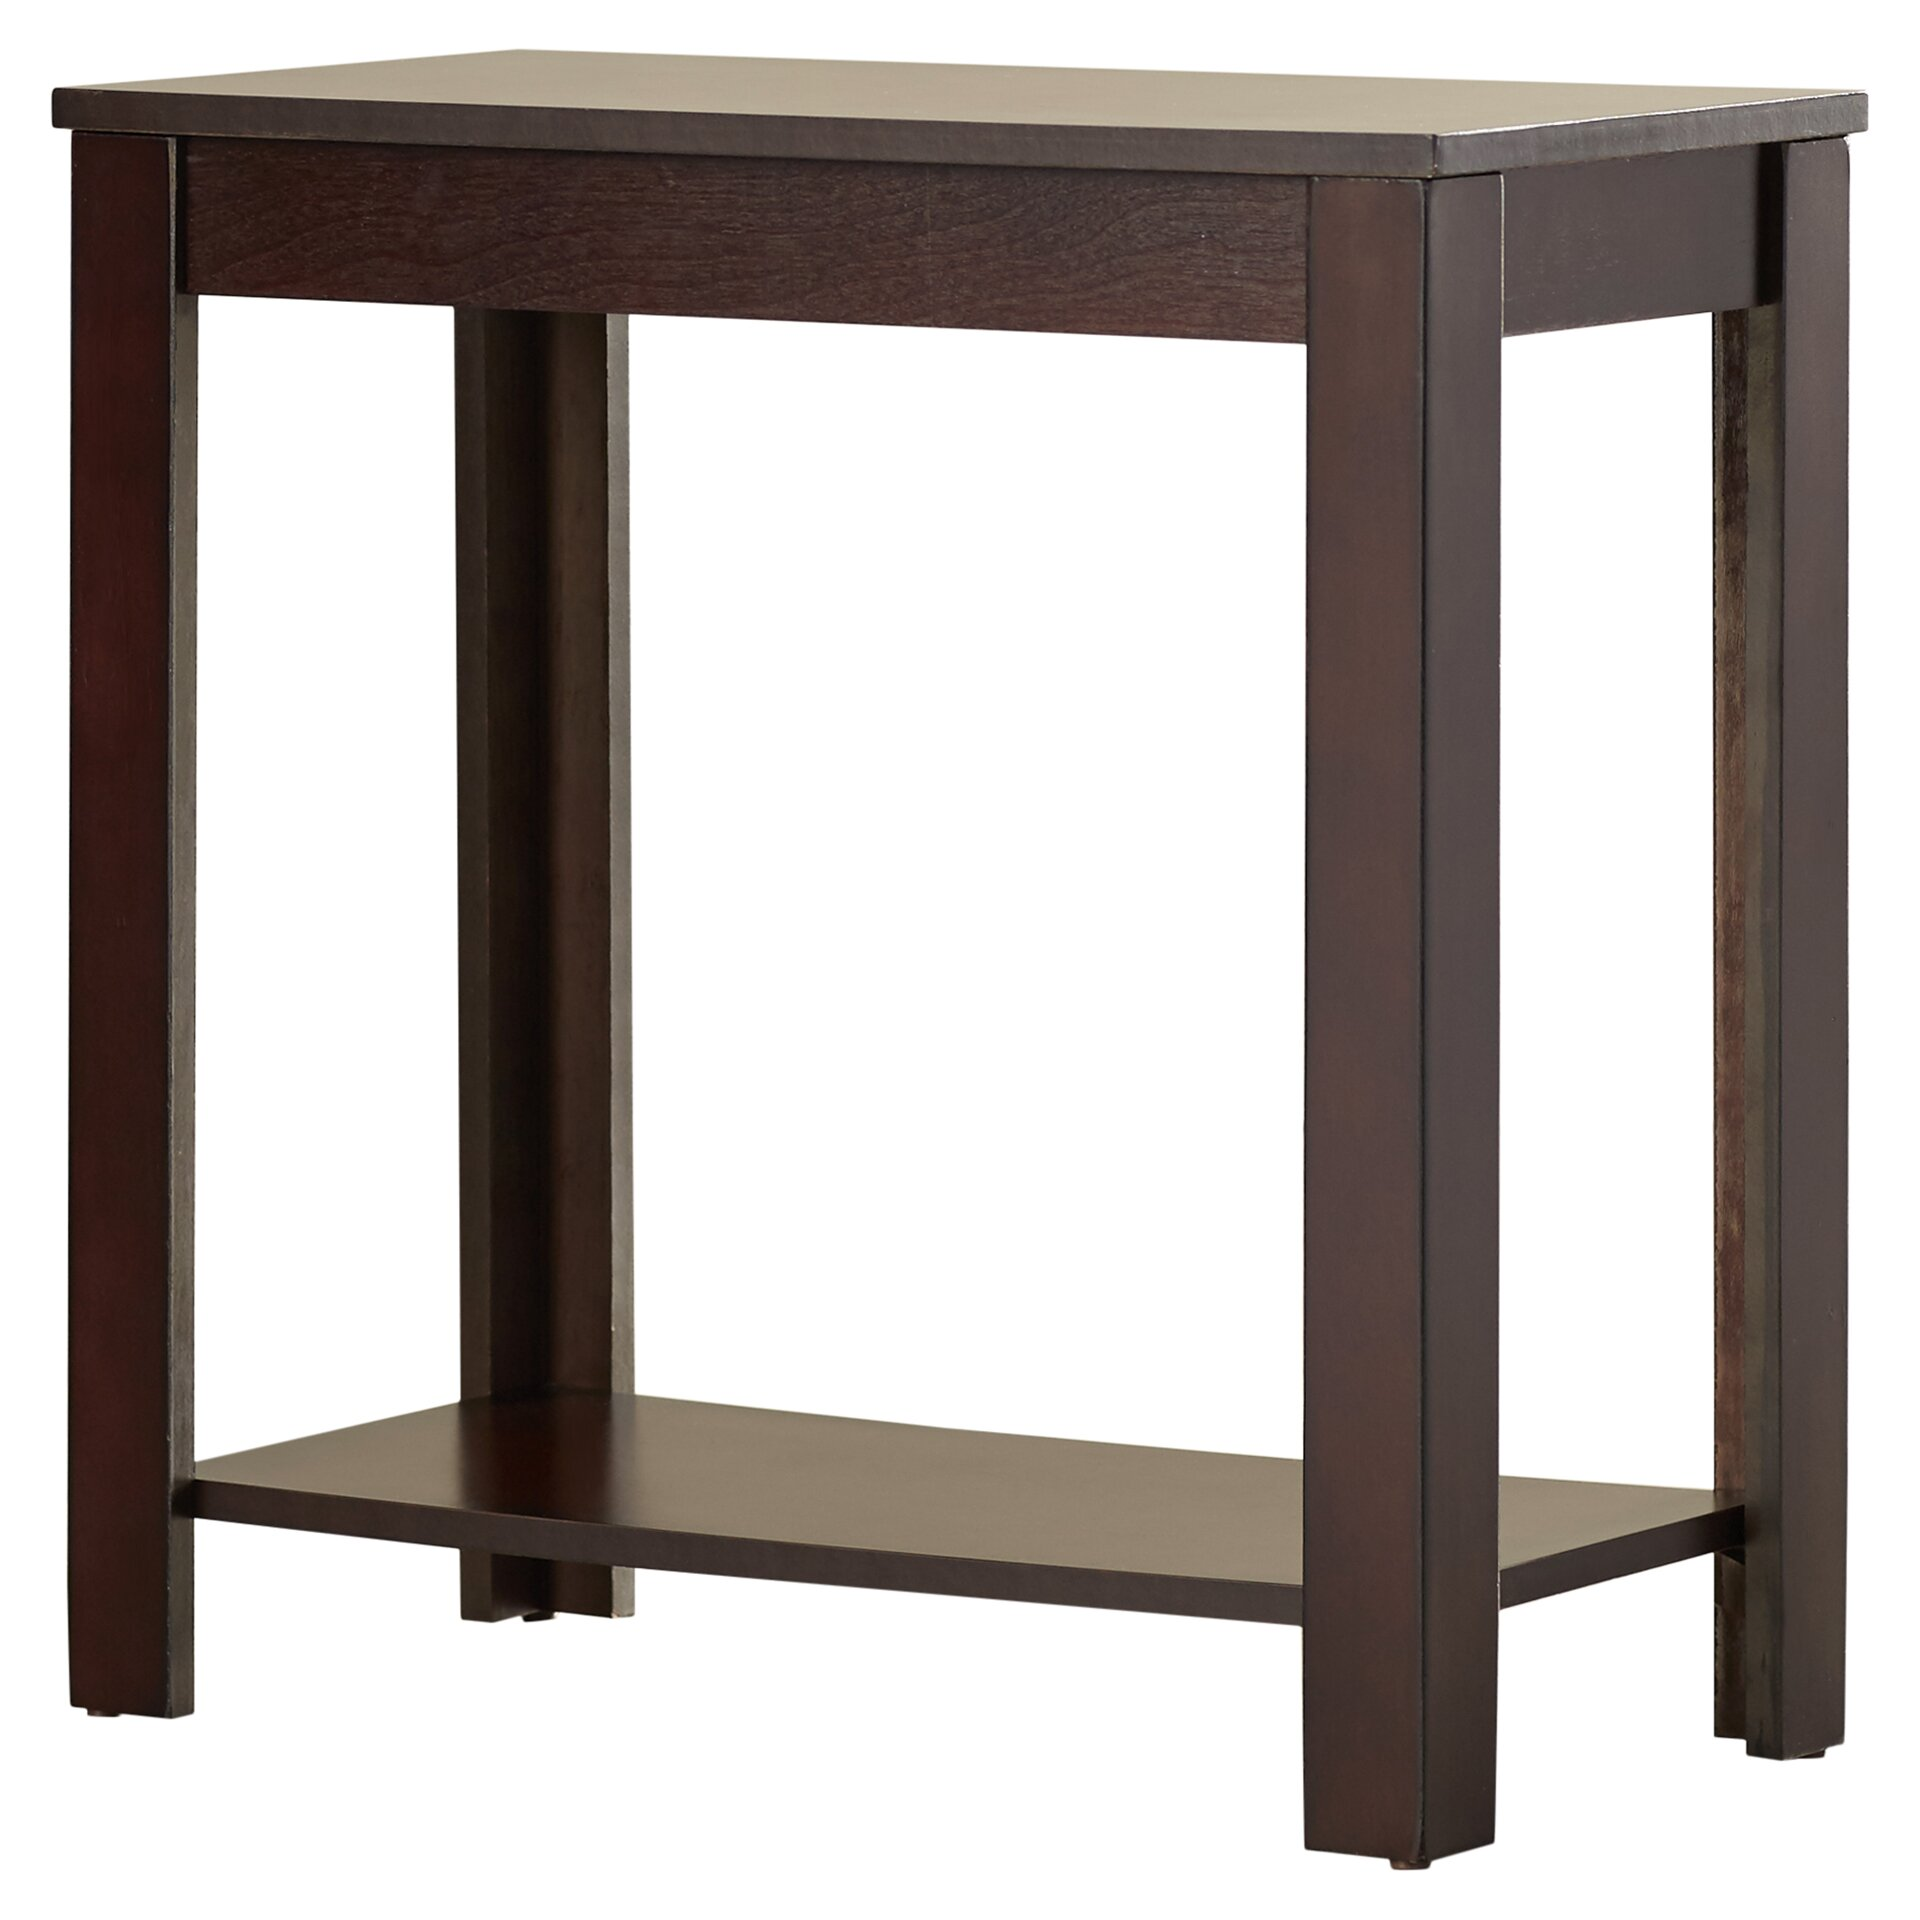 Andover mills juliette chairside table reviews wayfair for Chairside table